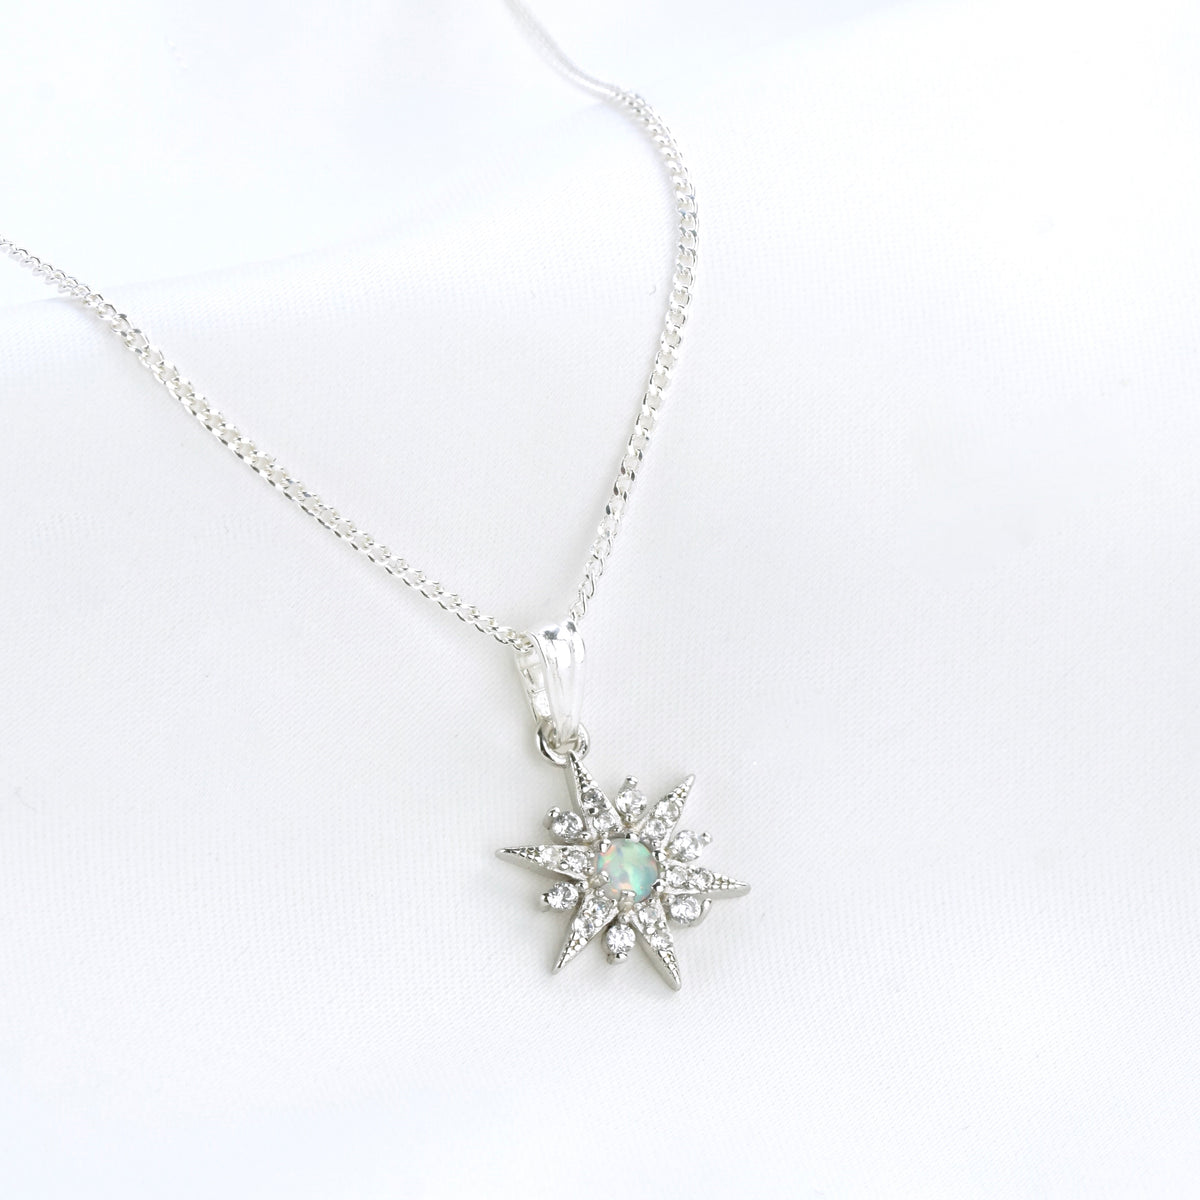 Silver White Opal North Star Necklace